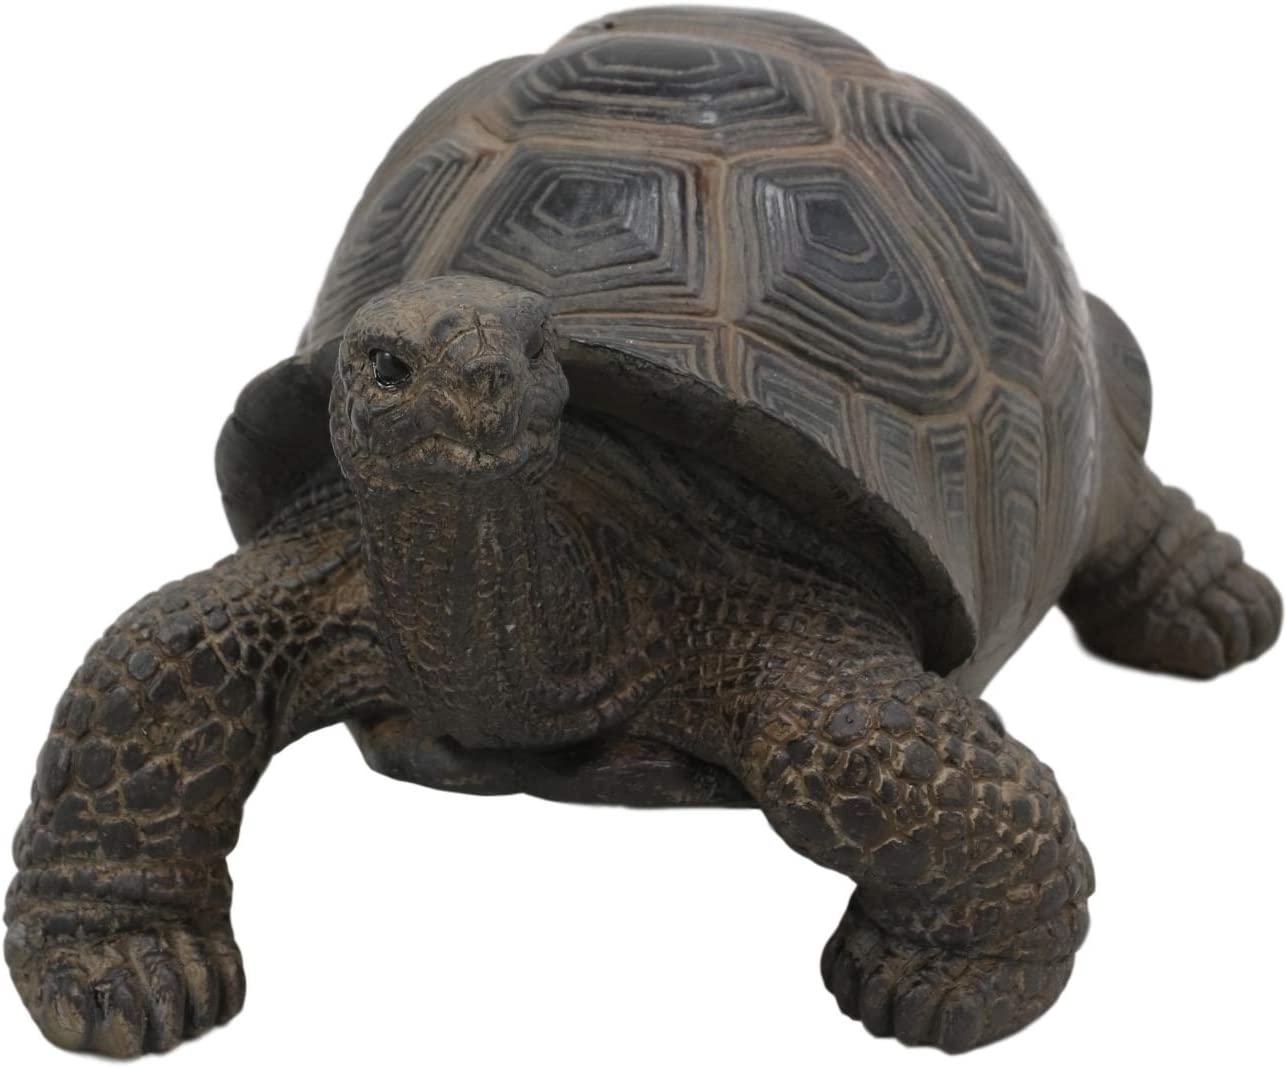 "Ebros Lifelike Galapagos Tortoise Statue 6.5"" Wide Taxidermy Replica Feng Shui Talisman of Stability and Fortune Lucky Turtle Figurine Decorative Zen Turtles Tortoises"